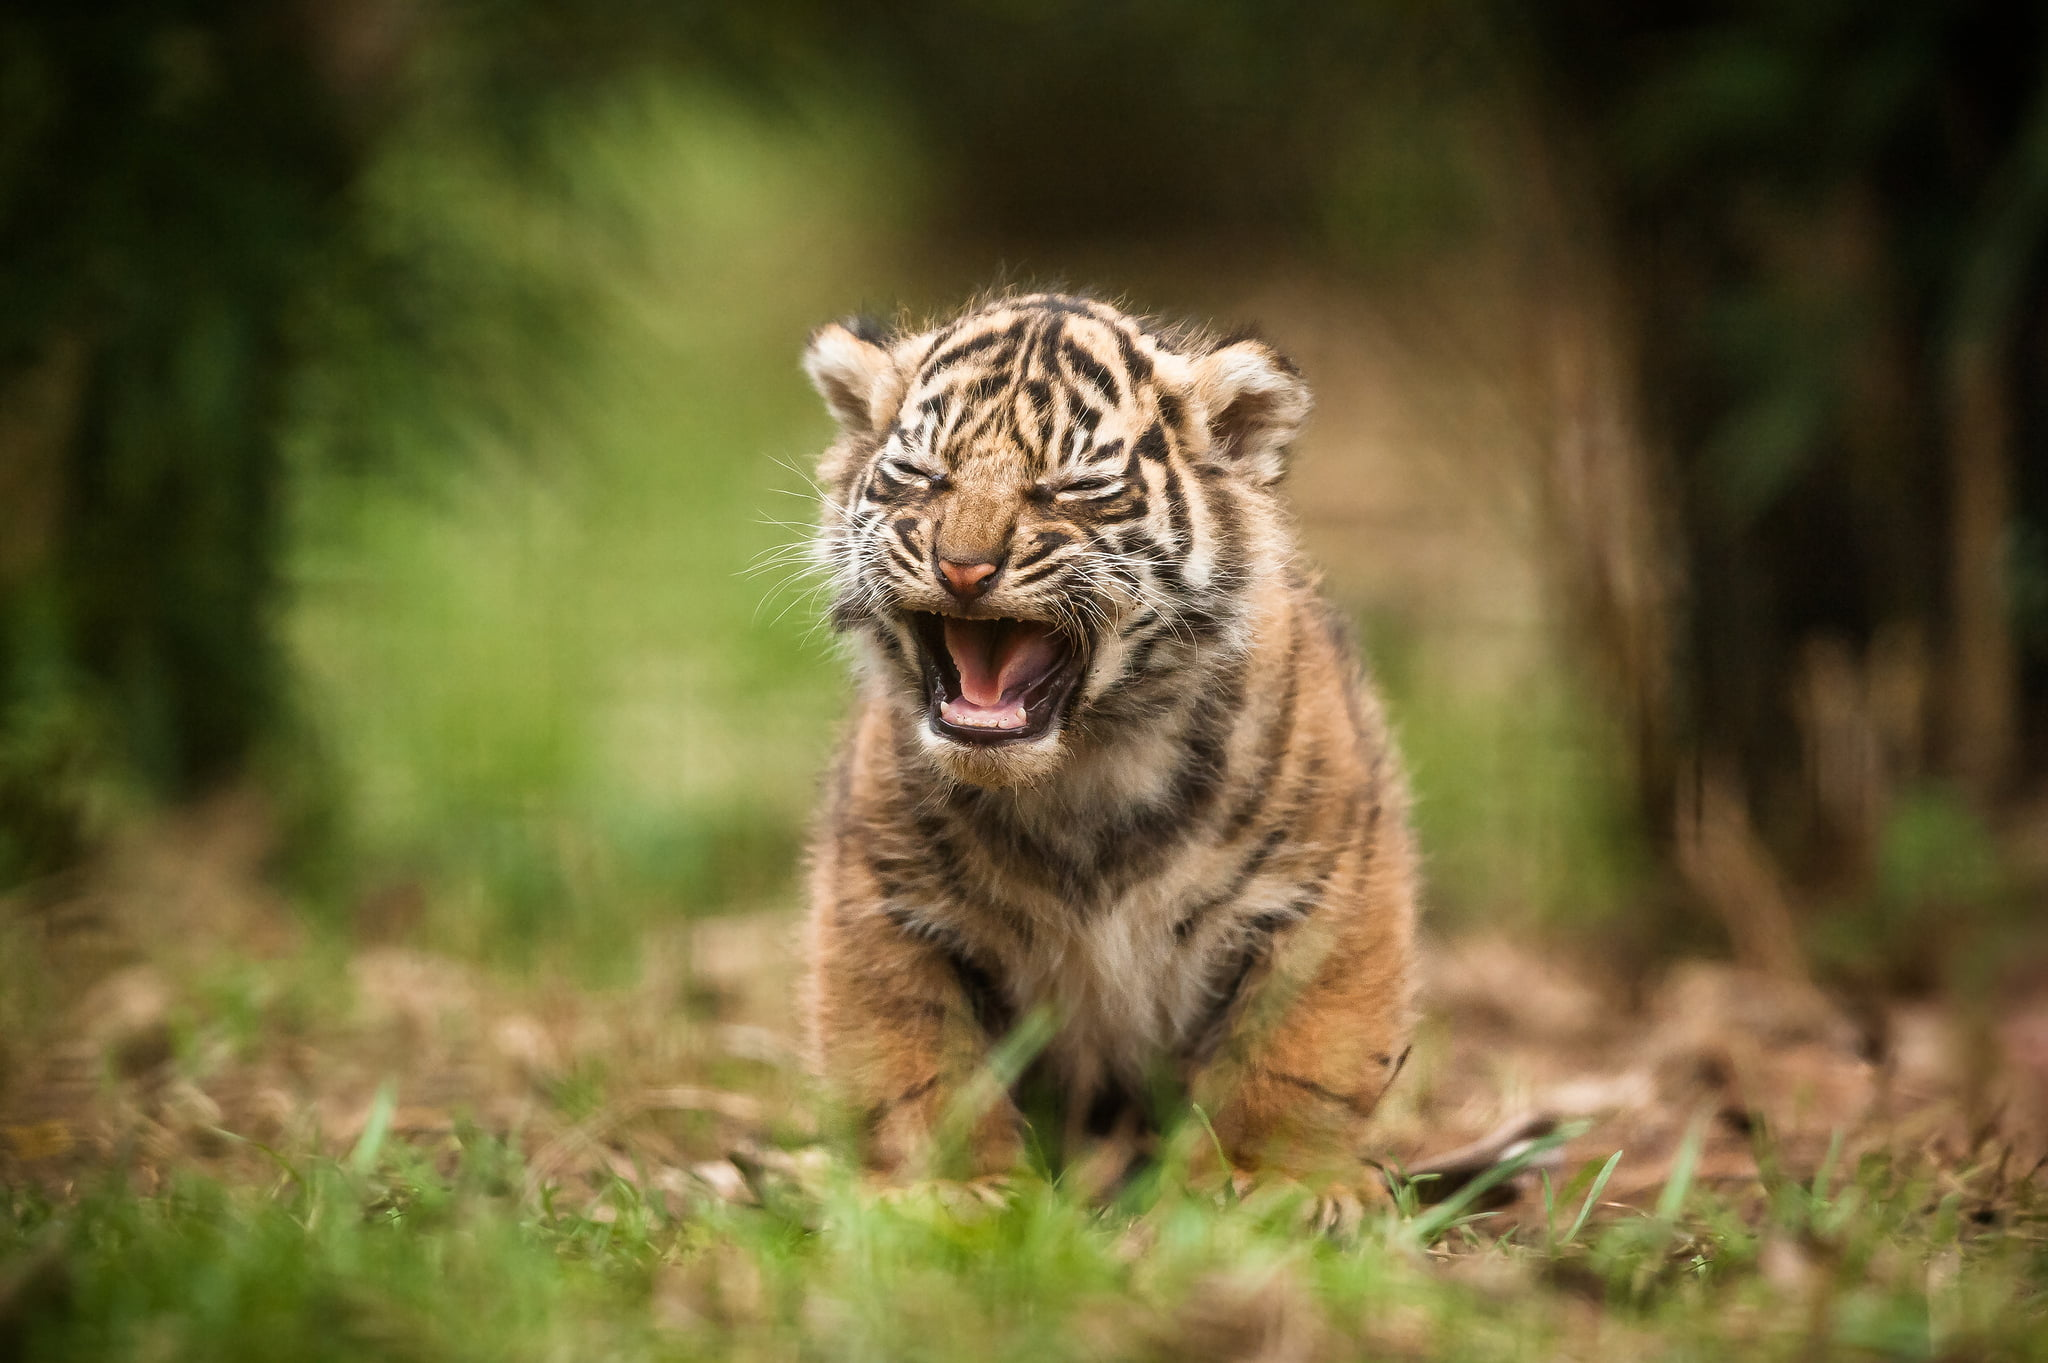 Tiger baby wallpaper